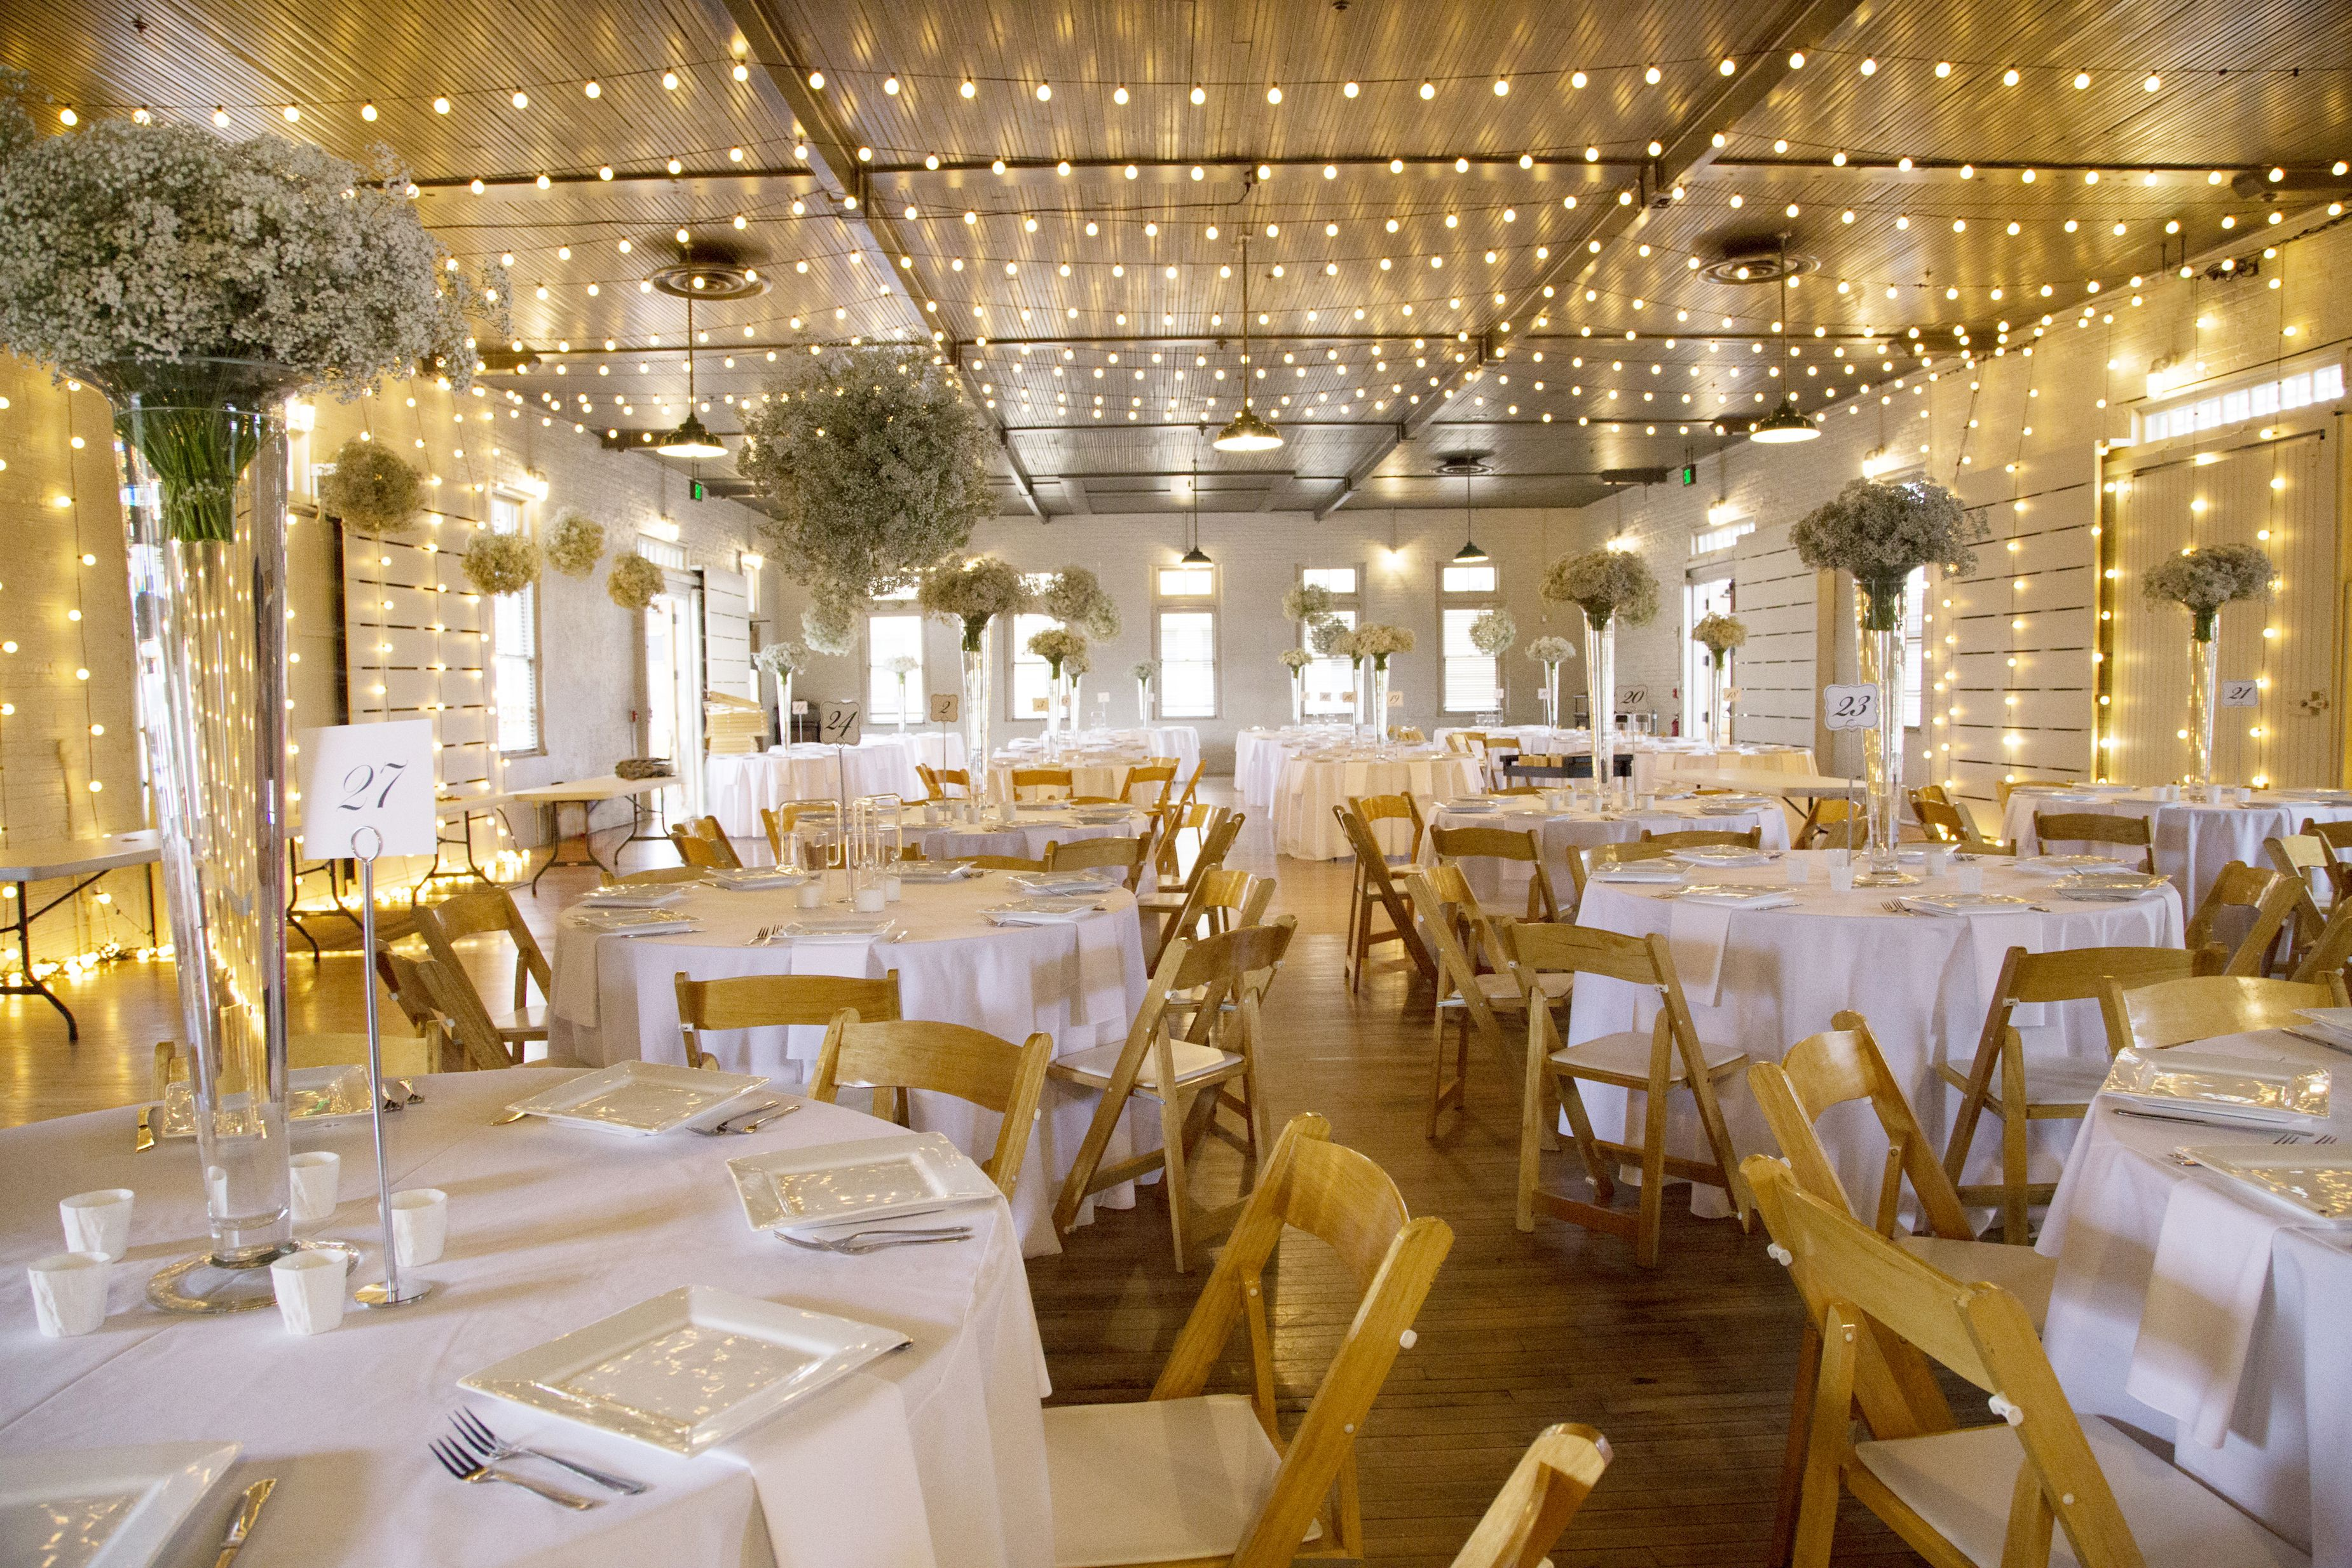 Wedding venue decoration images  Reception Space for an all white wedding in MT Design and Decor